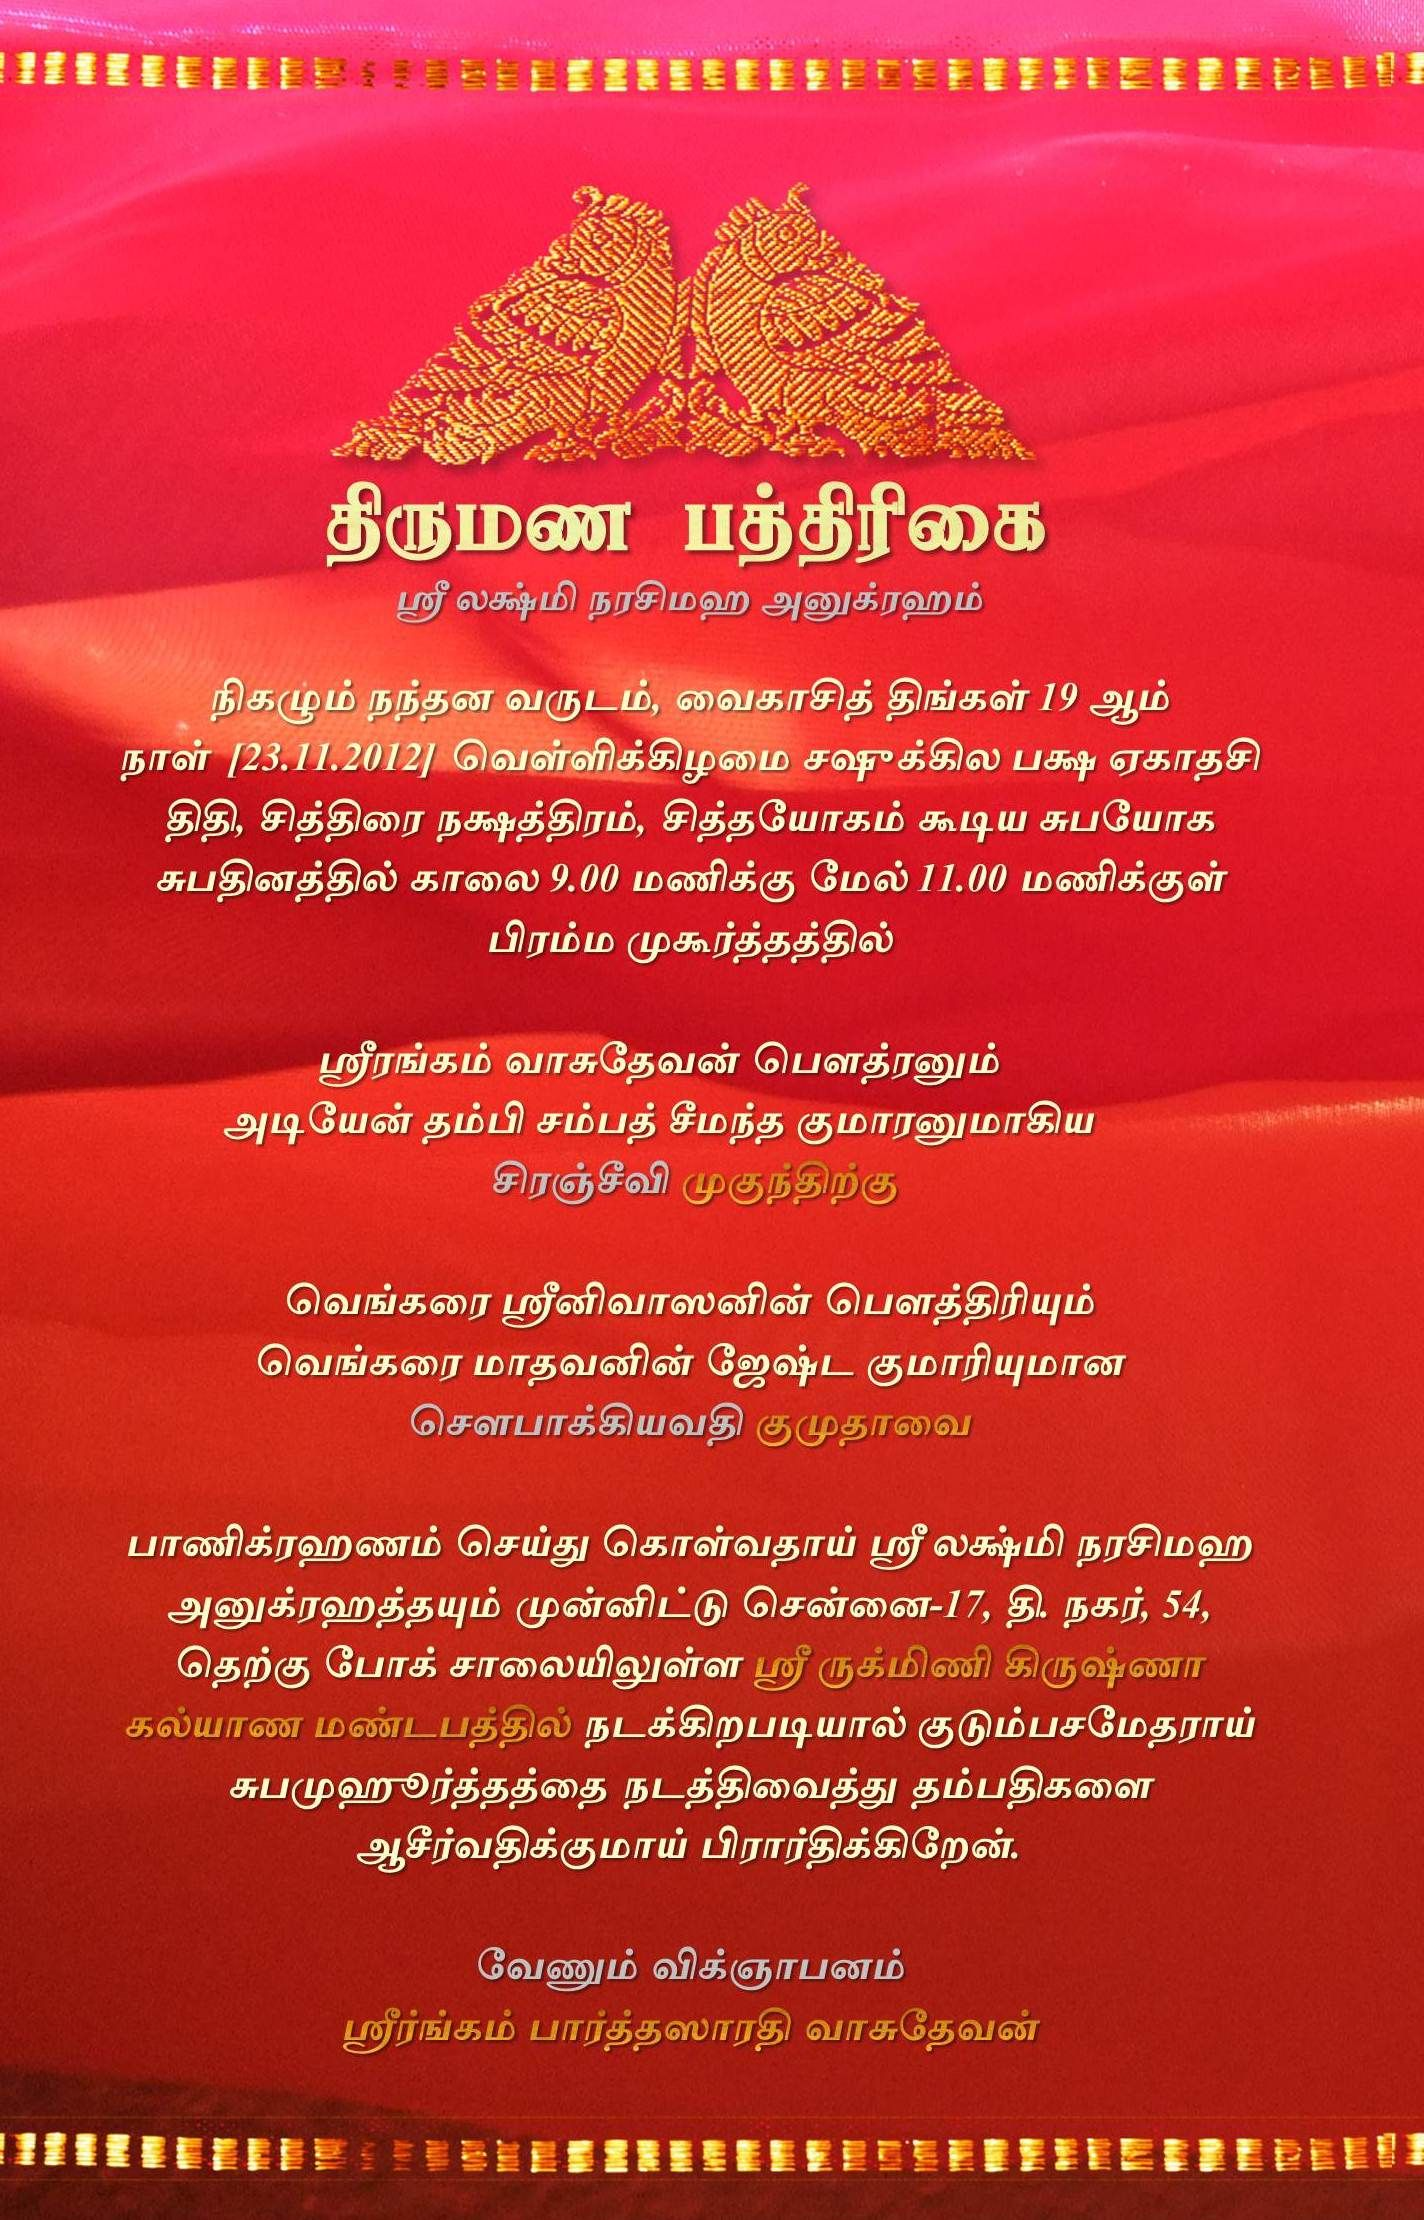 Sample wedding invite for Tamil Iyengar back- a contemporary take on ...